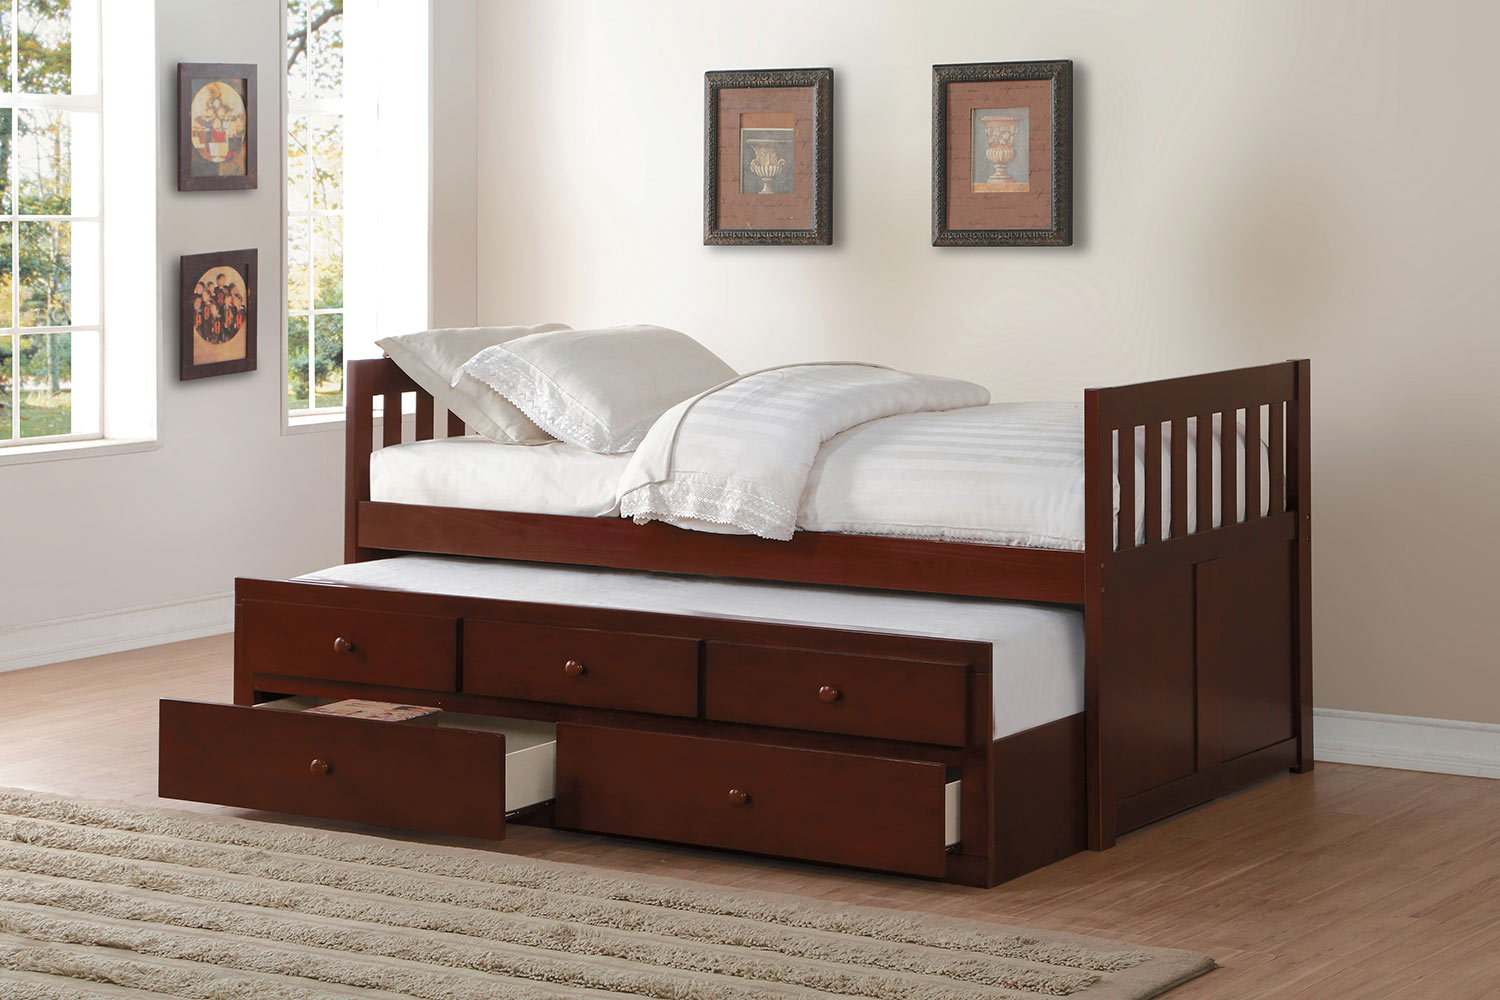 Homelegance Rowe Twin Bed With Trundle And Two Storage